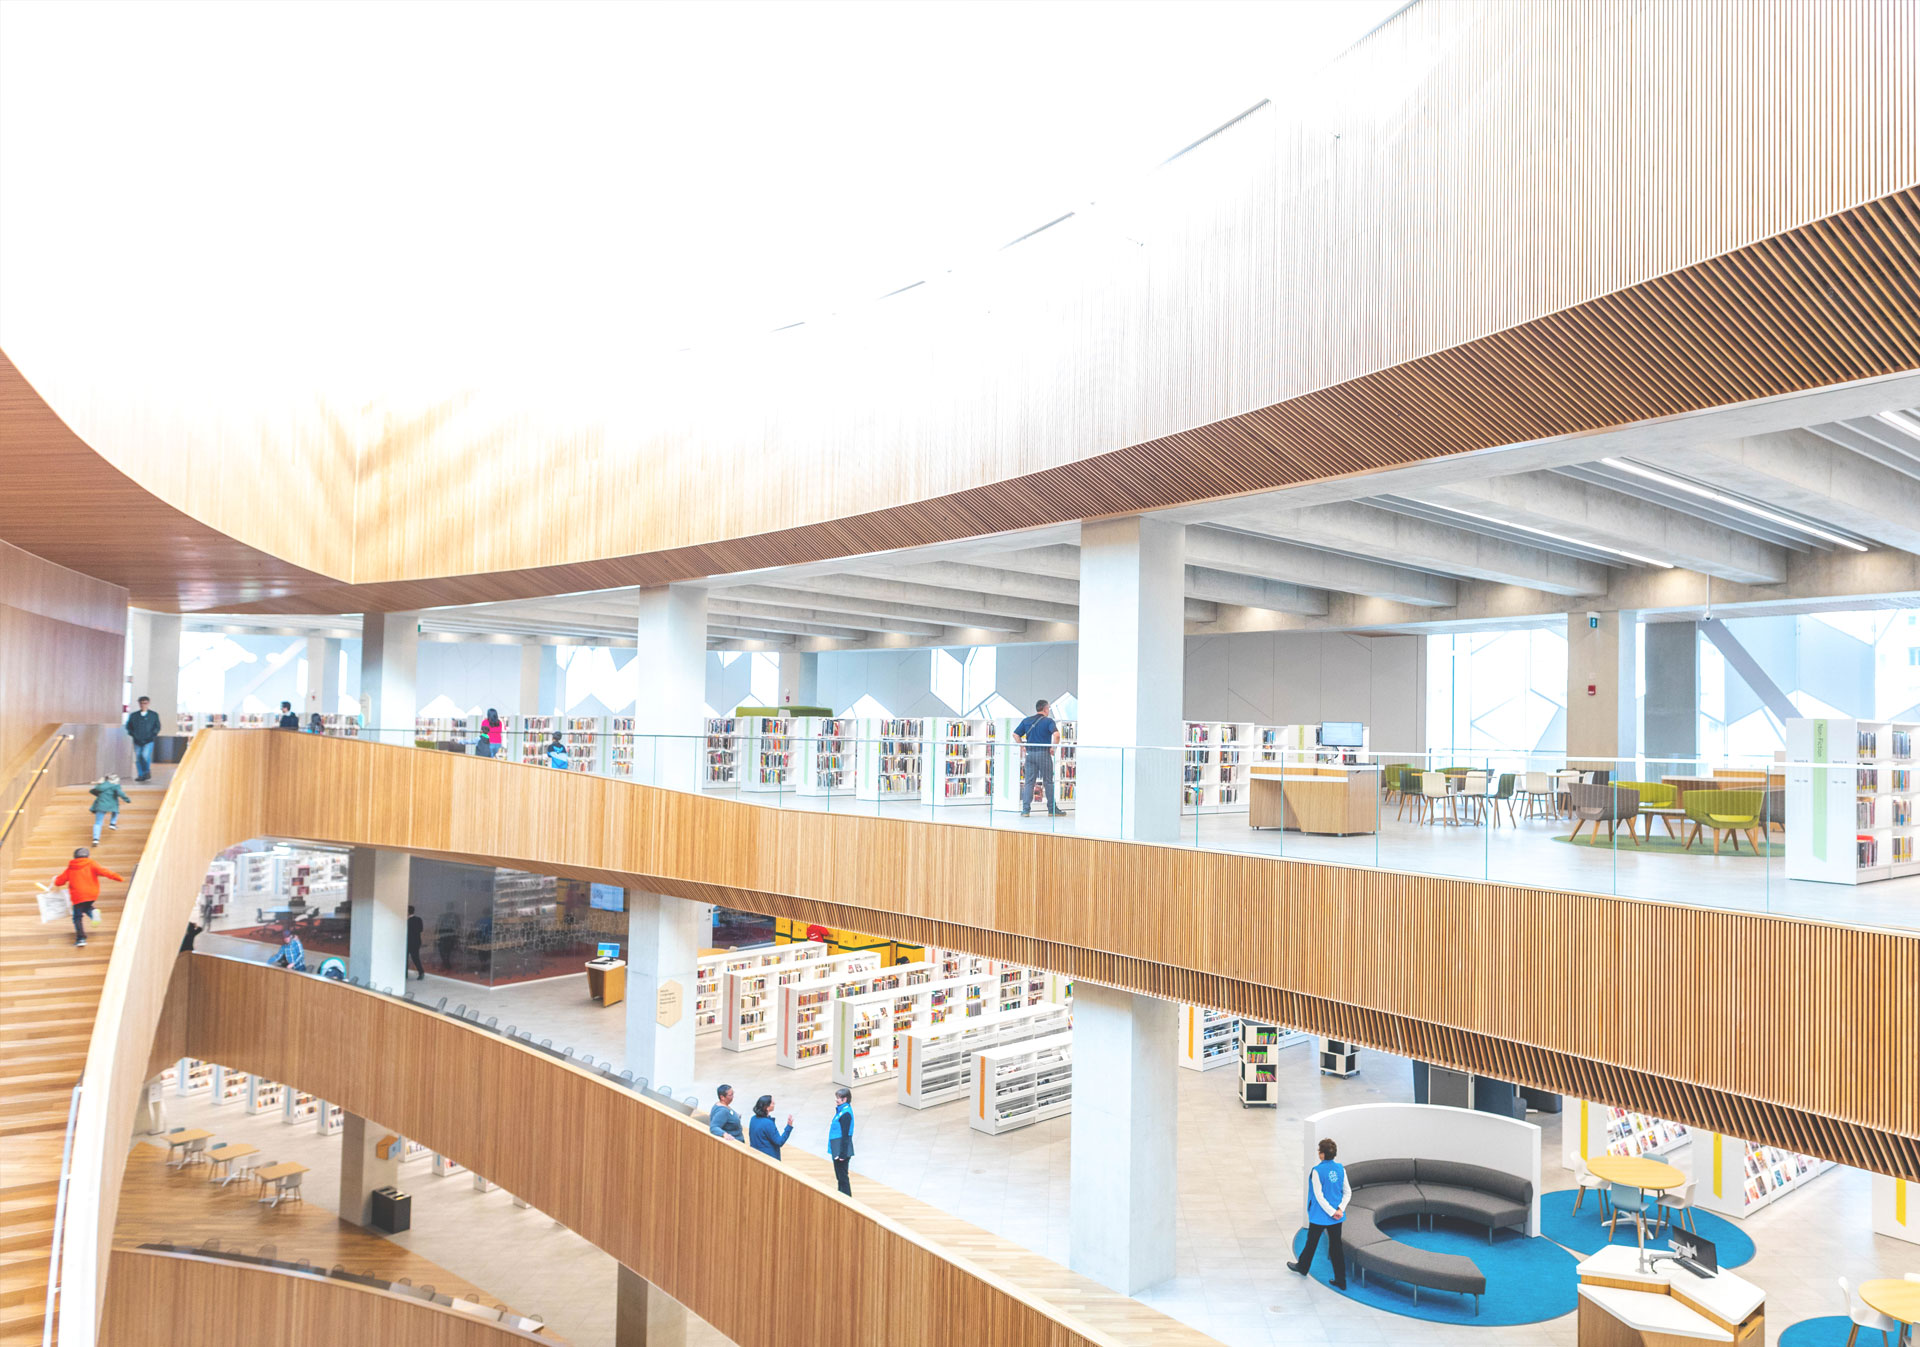 Explore the New Central Library in Calgary.